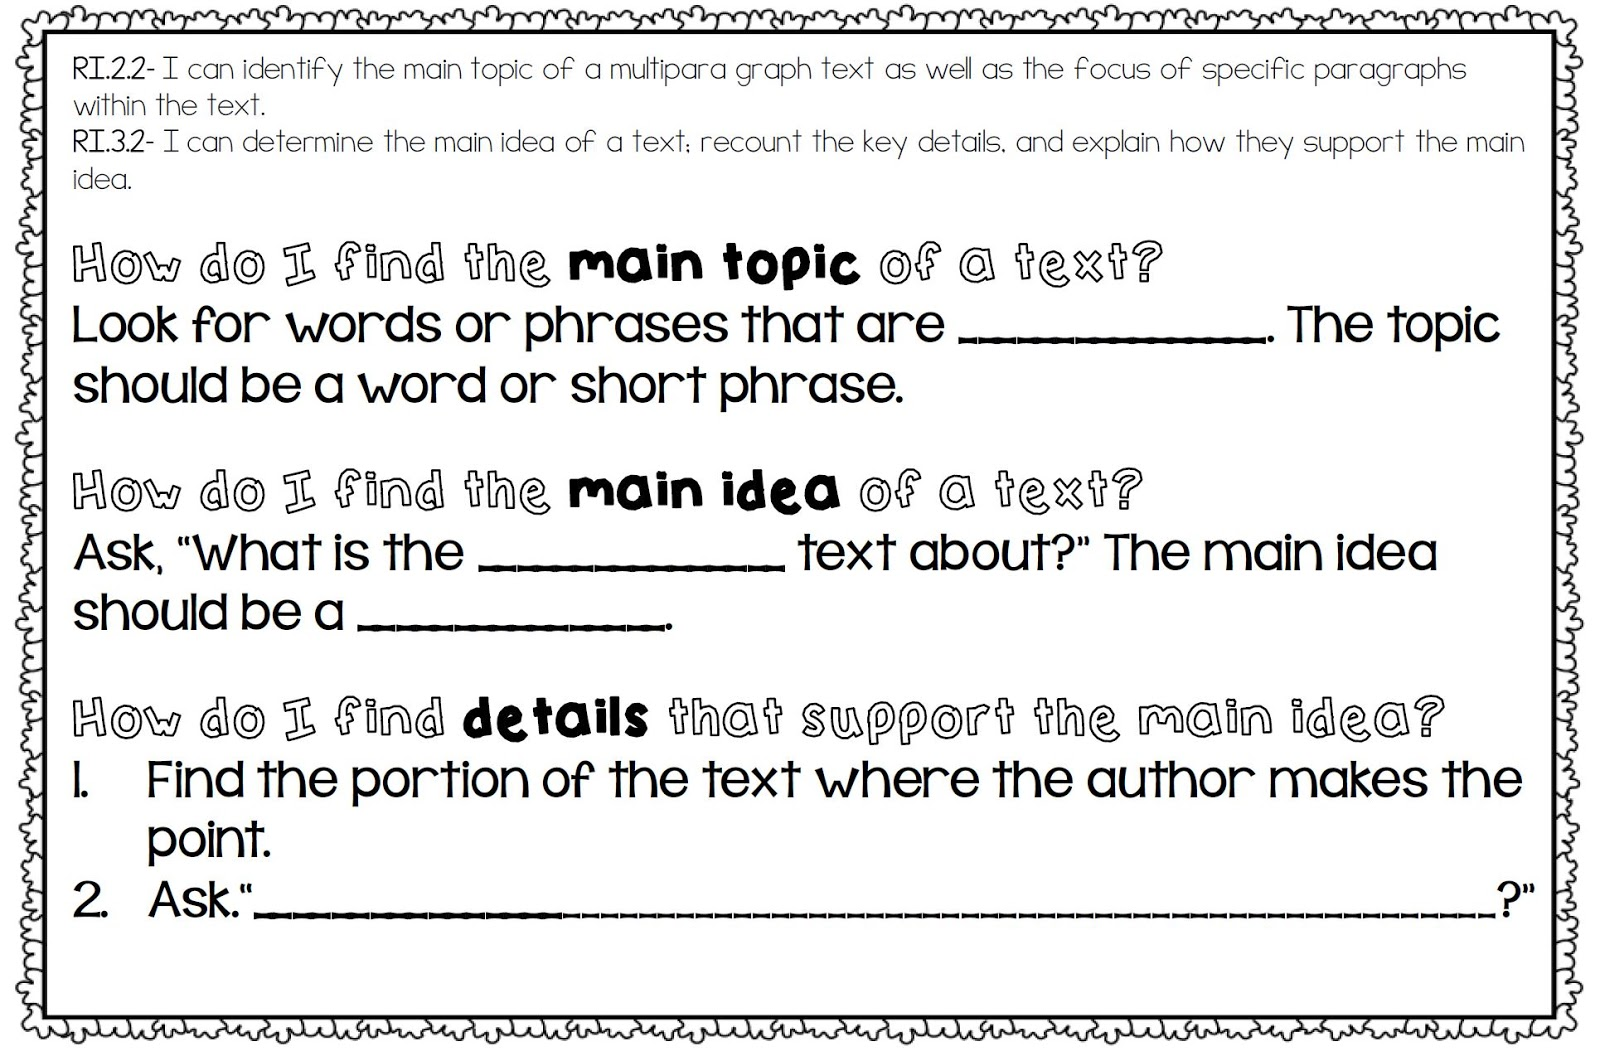 Worksheet Read The Passage And Answer The Questions august 2016 common core kingdom model how to read a passage and answer questions based on the standard you can put projector or piece of chart paper